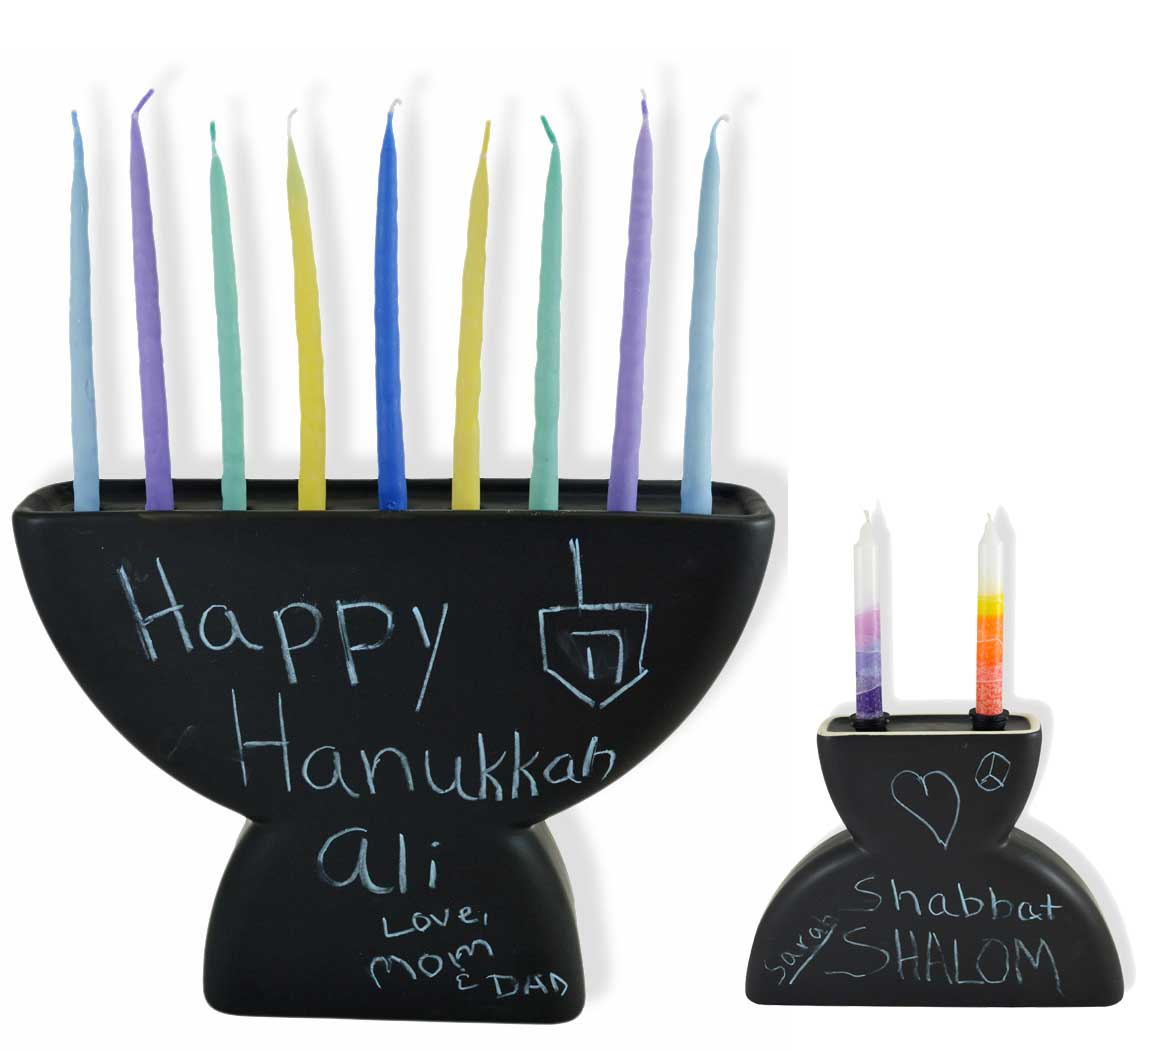 Chalkboard Menorah, $19 @traditionsjewishgifts.com